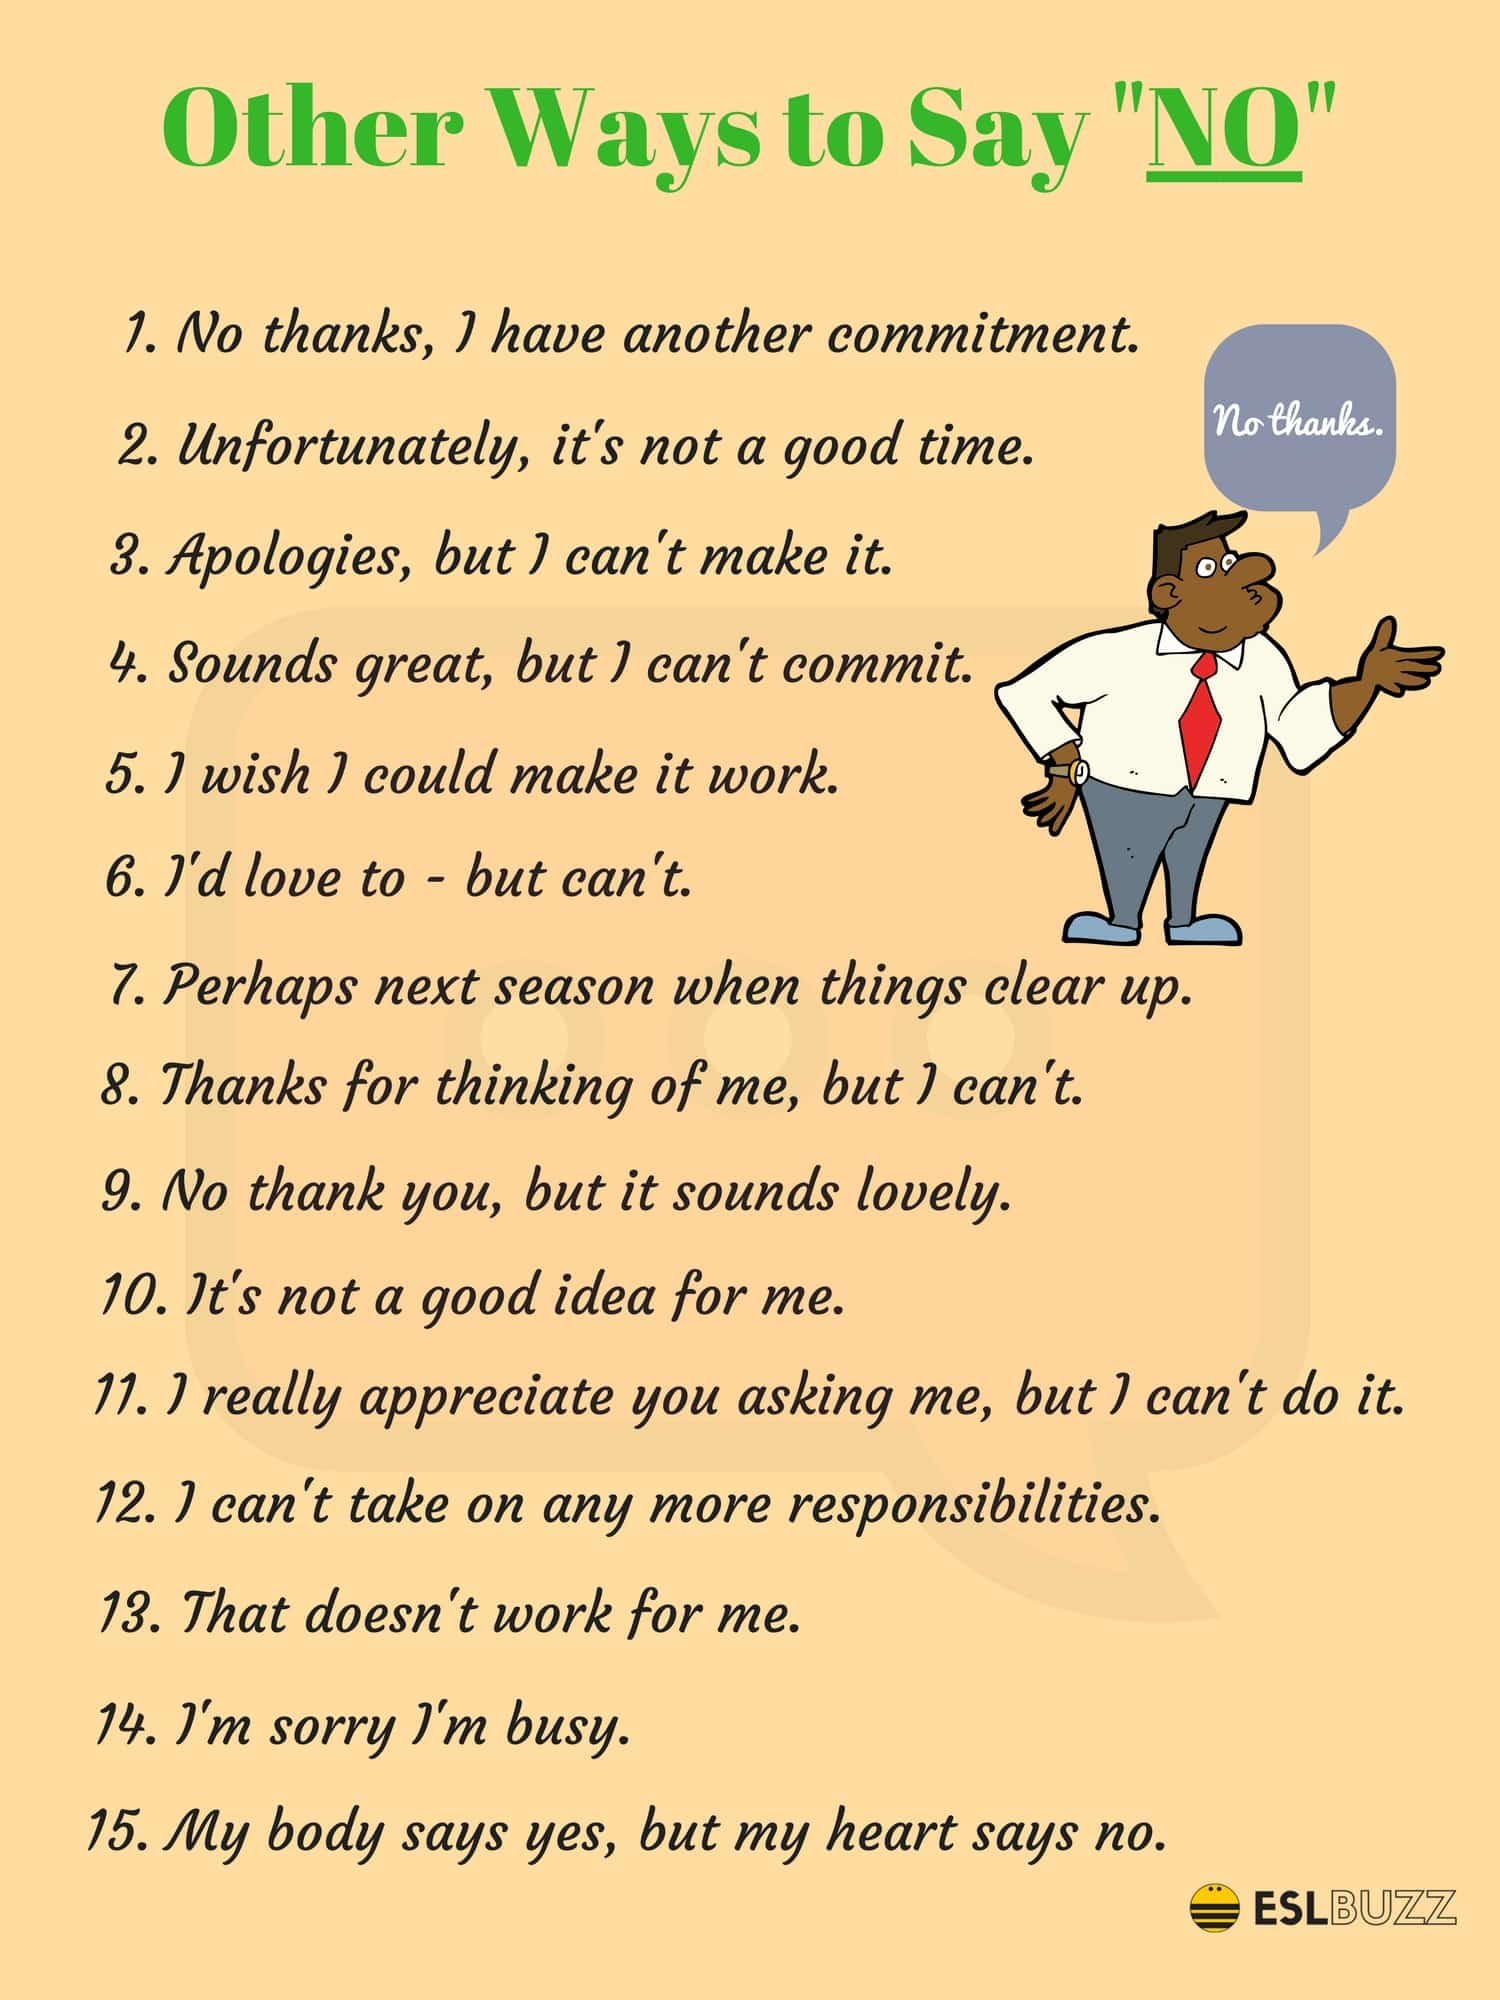 Different Ways to Say NO